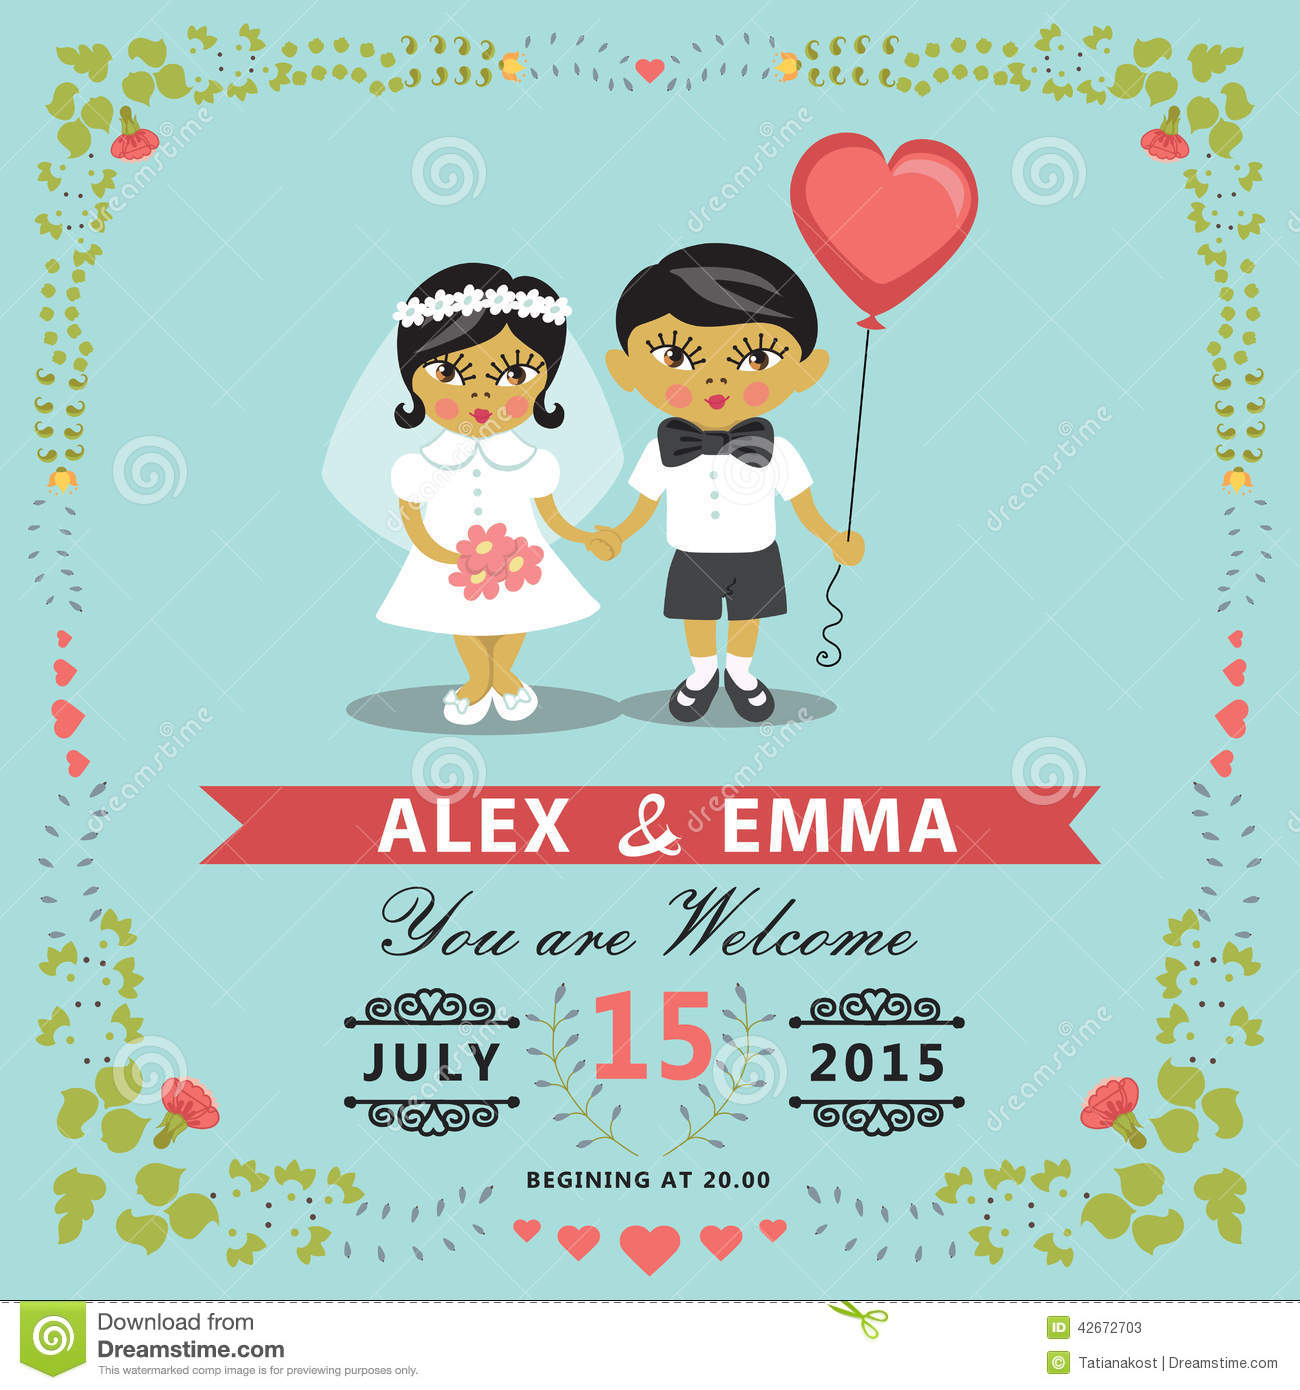 Wedding Invitation With Asian Baby Bride,groom,floral